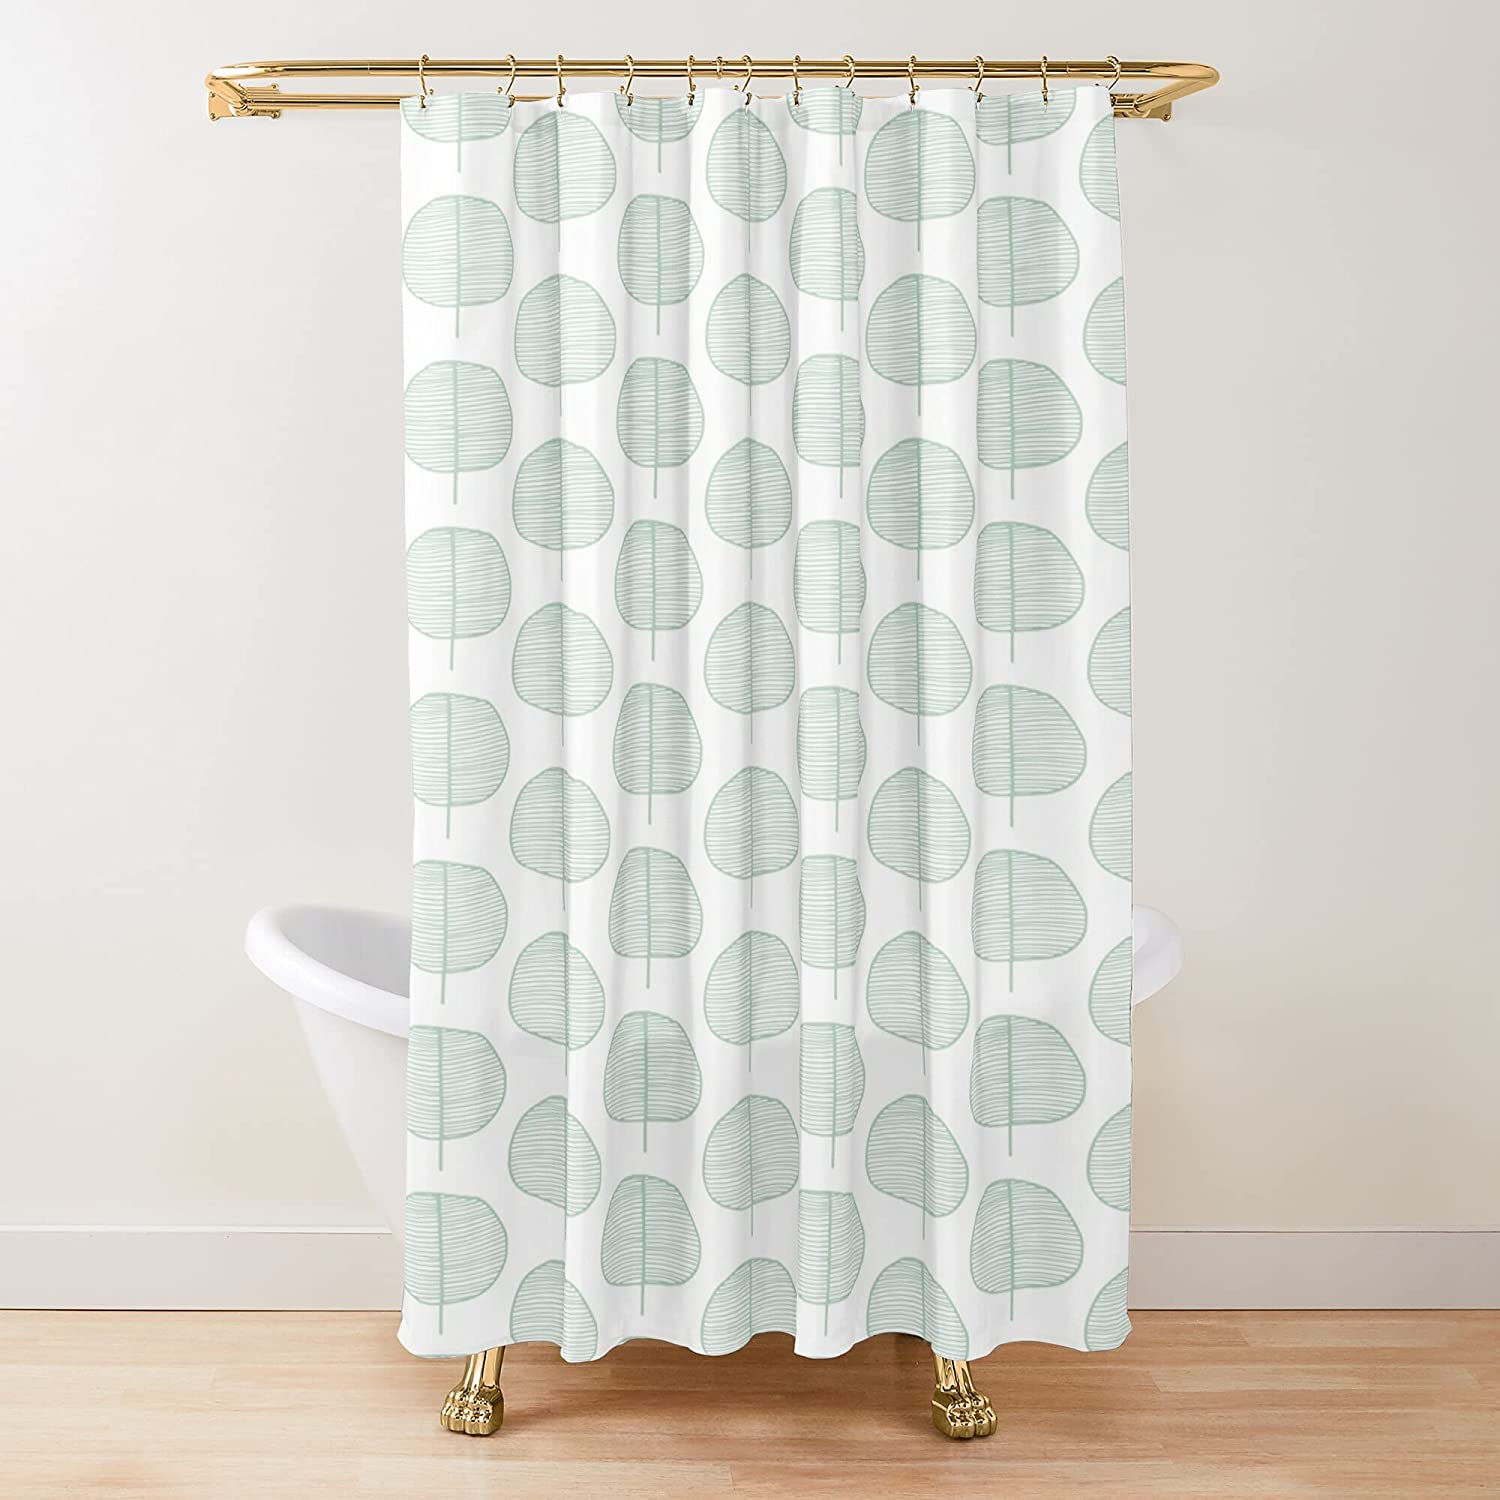 Ranking integrated 1st place Mint Leaf Columbus Mall Scandi Pattern Fabric Shower Curtains Customi Printed